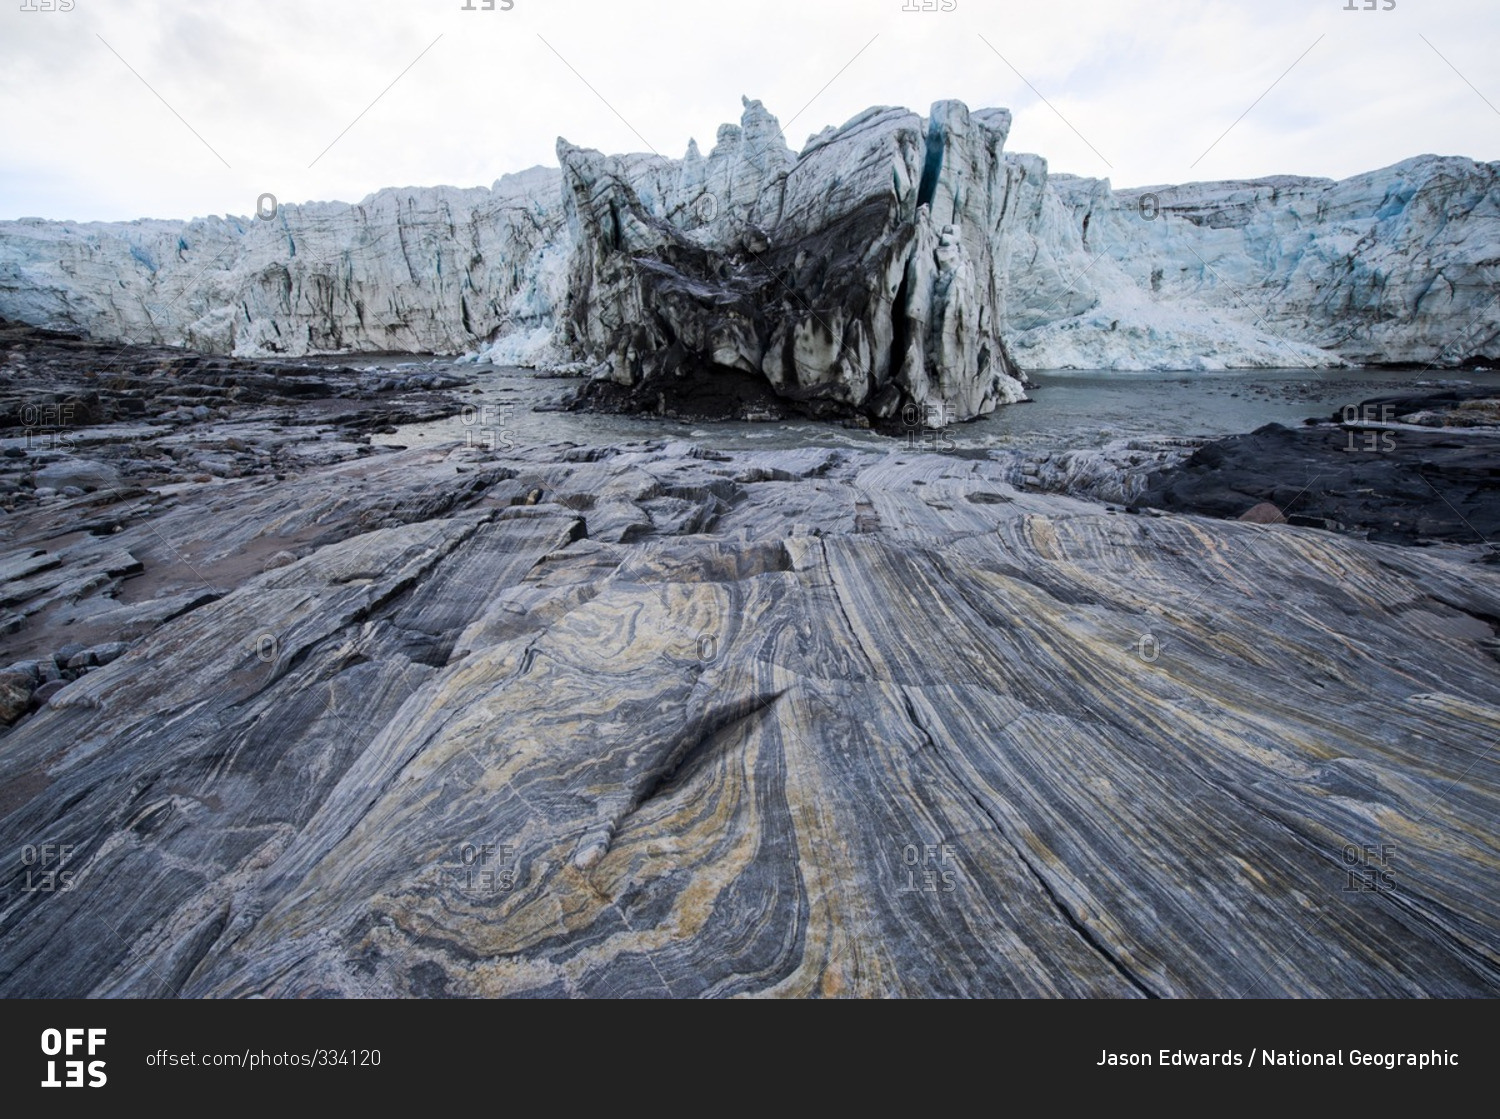 Striations carved into bedrock by ice erosion as a glacier